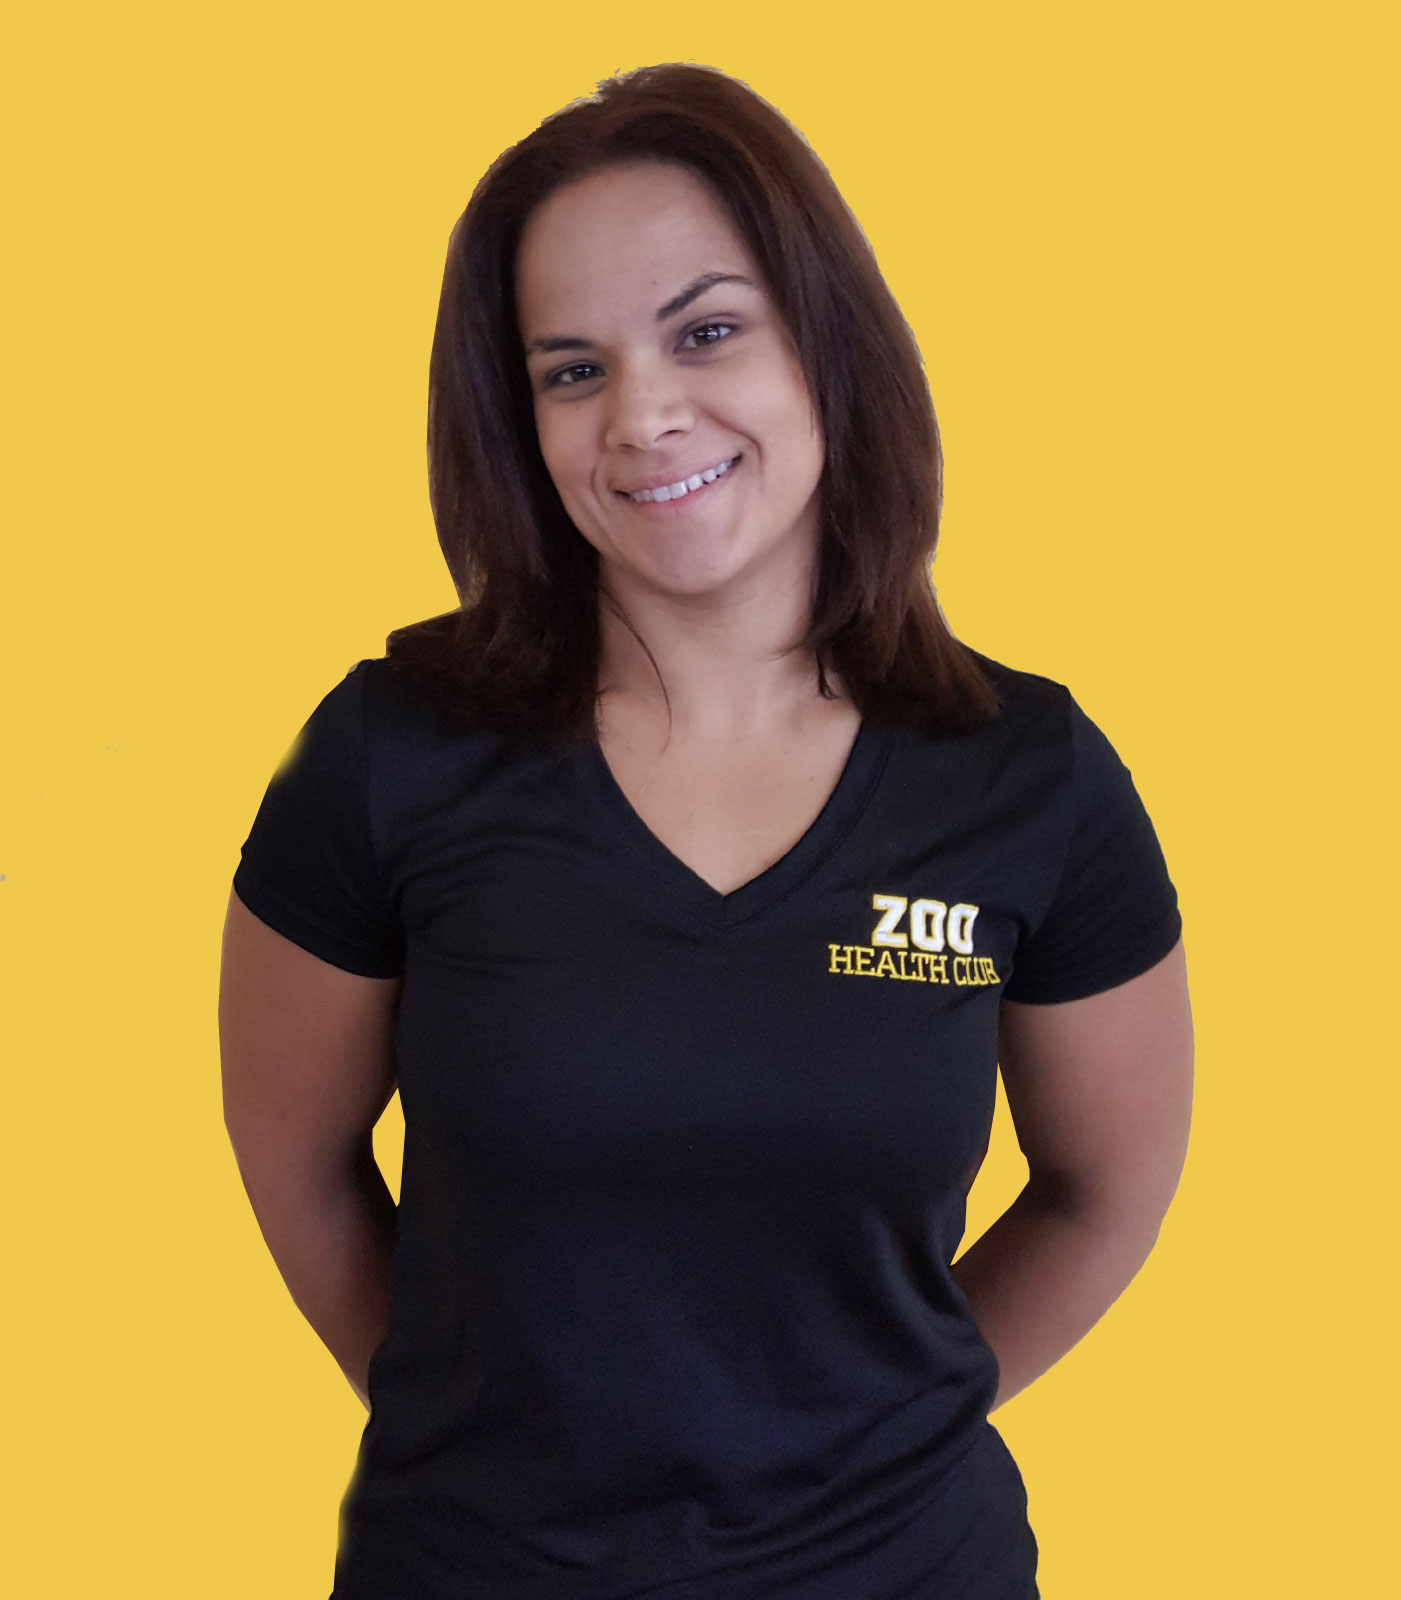 zoo gym fitness franchise opportunity stephanie nieves